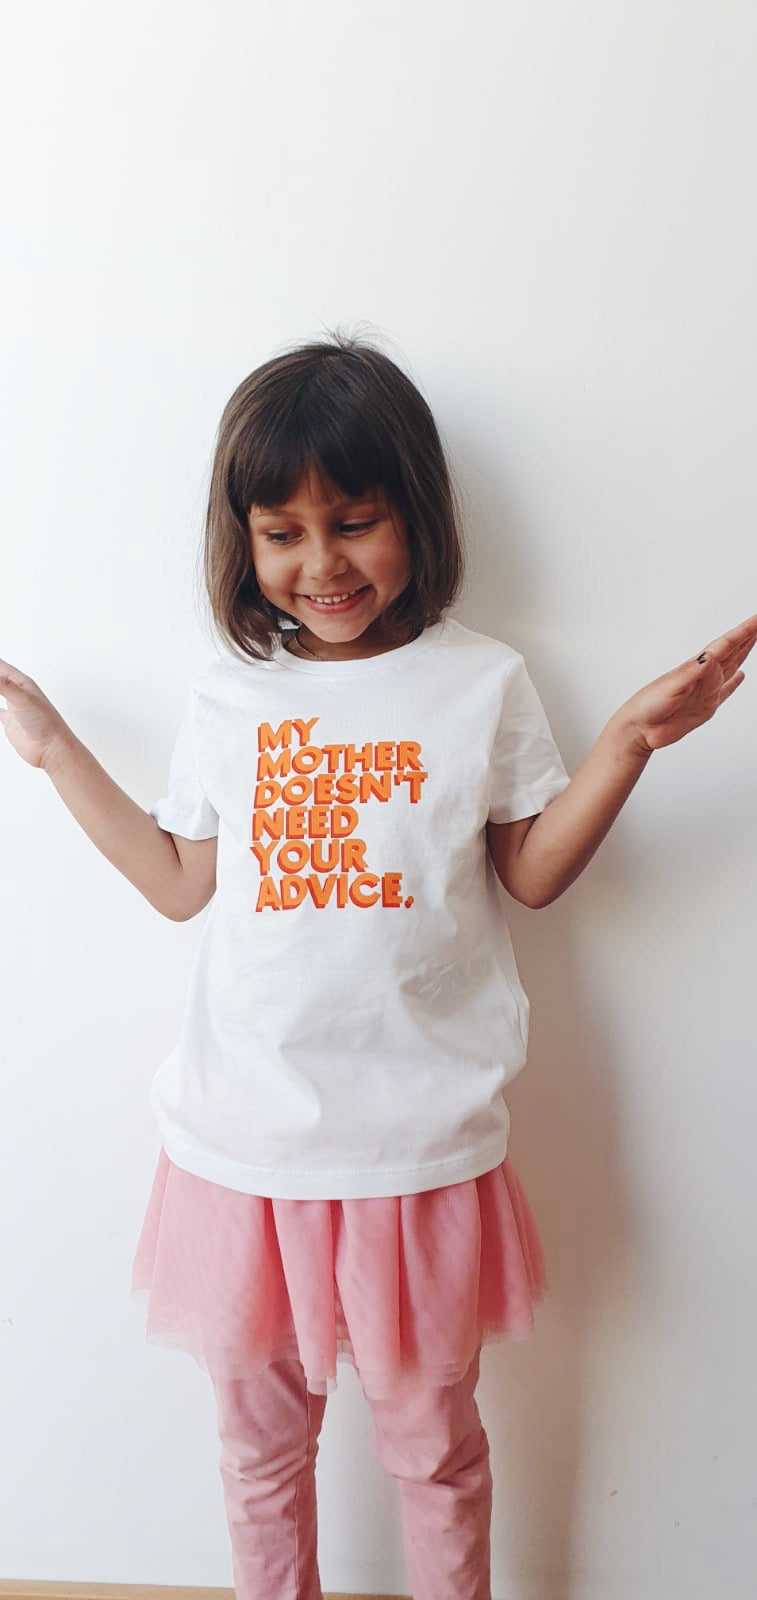 My Mother doesn't need your advice T-shirt